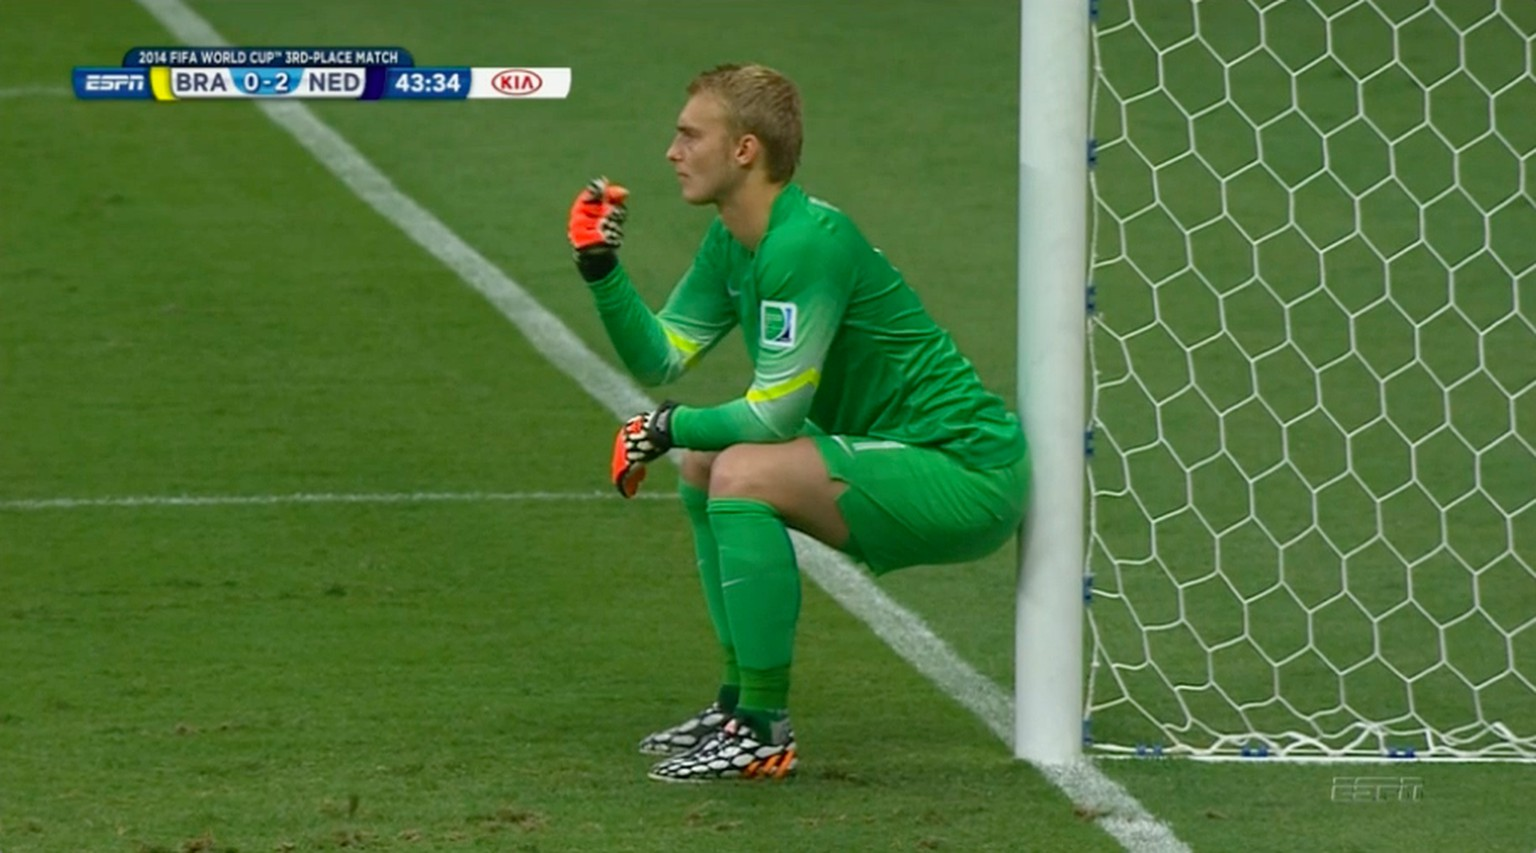 Goalkeeper Jasper Cillessen of the Netherlands waits for a kick free during the 2014 World Cup third-place playoff between Brazil and the Netherlands at the Brasilia national stadium in Brasilia July 12, 2014. REUTERS/Ueslei Marcelino (BRAZIL  - Tags: SOCCER SPORT WORLD CUP)